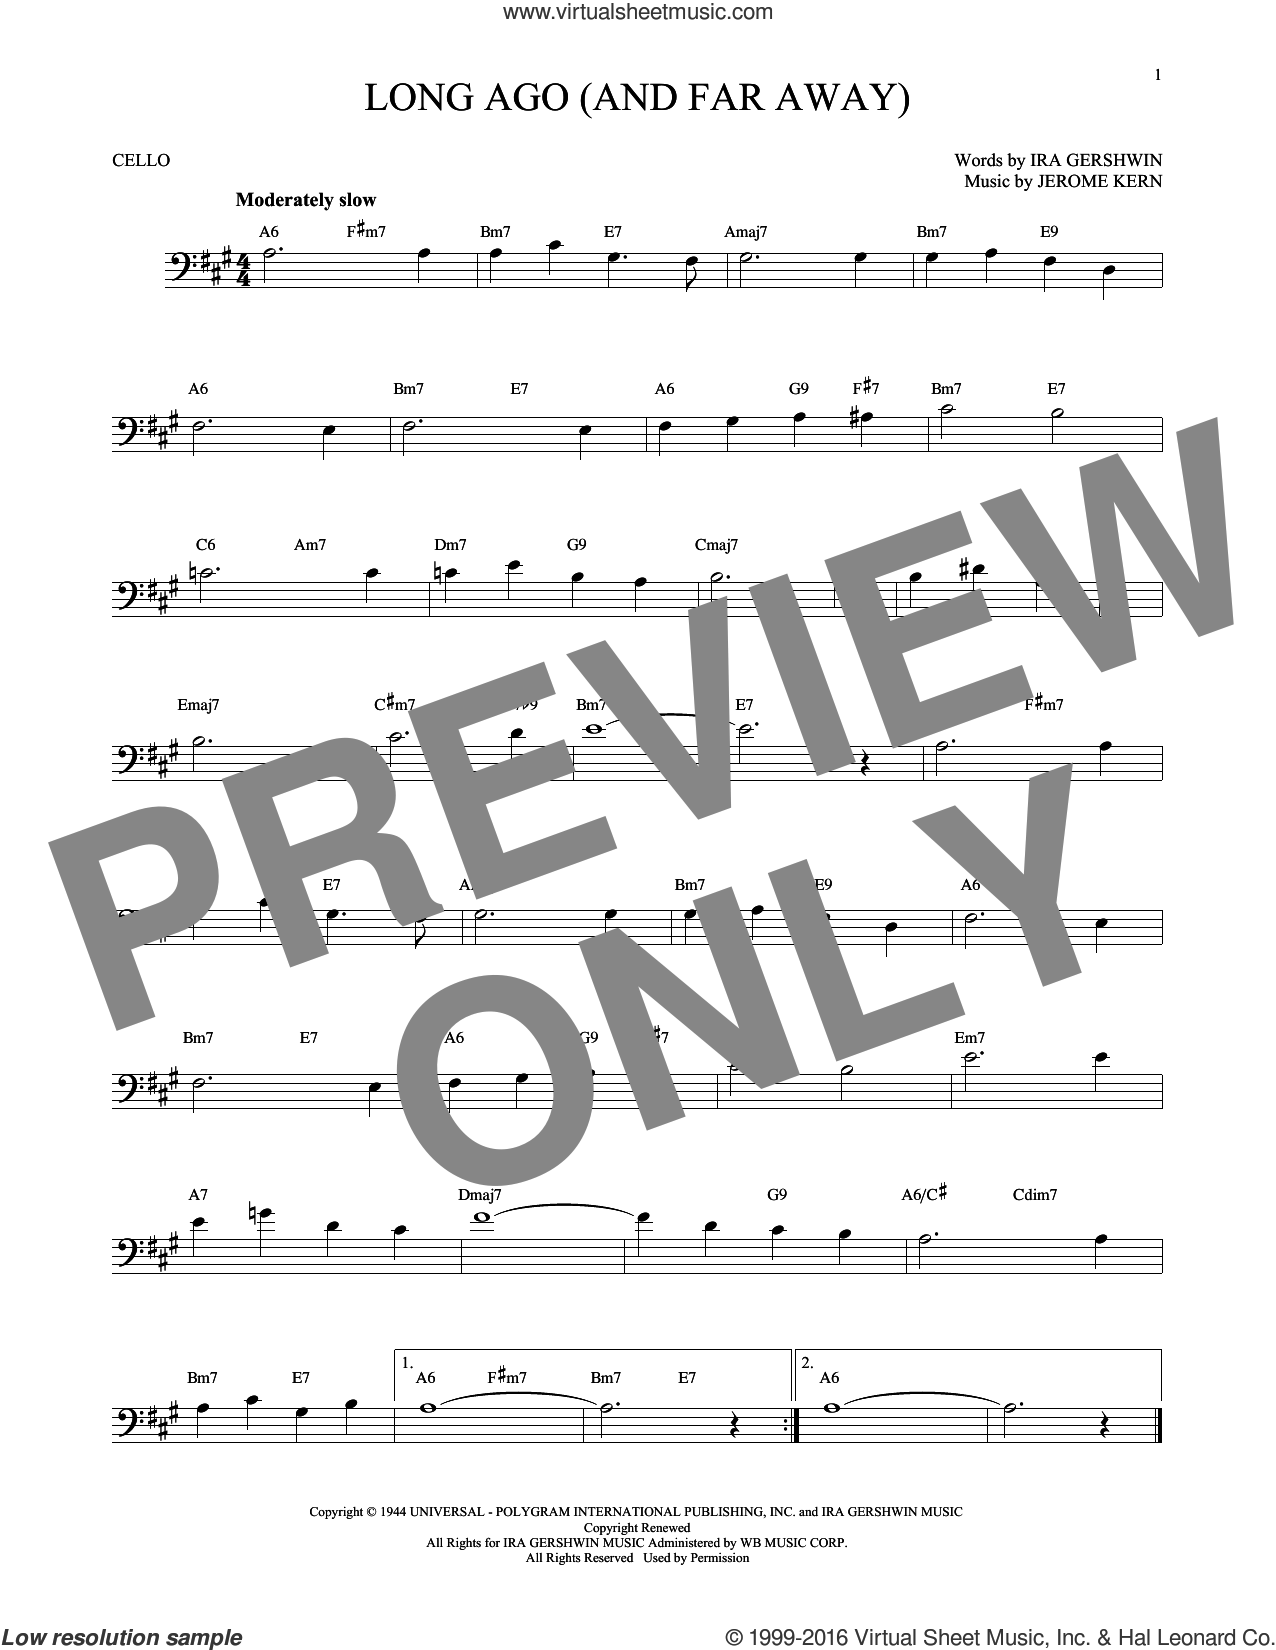 Long Ago (And Far Away) sheet music for cello solo by Ira Gershwin and Jerome Kern, intermediate skill level